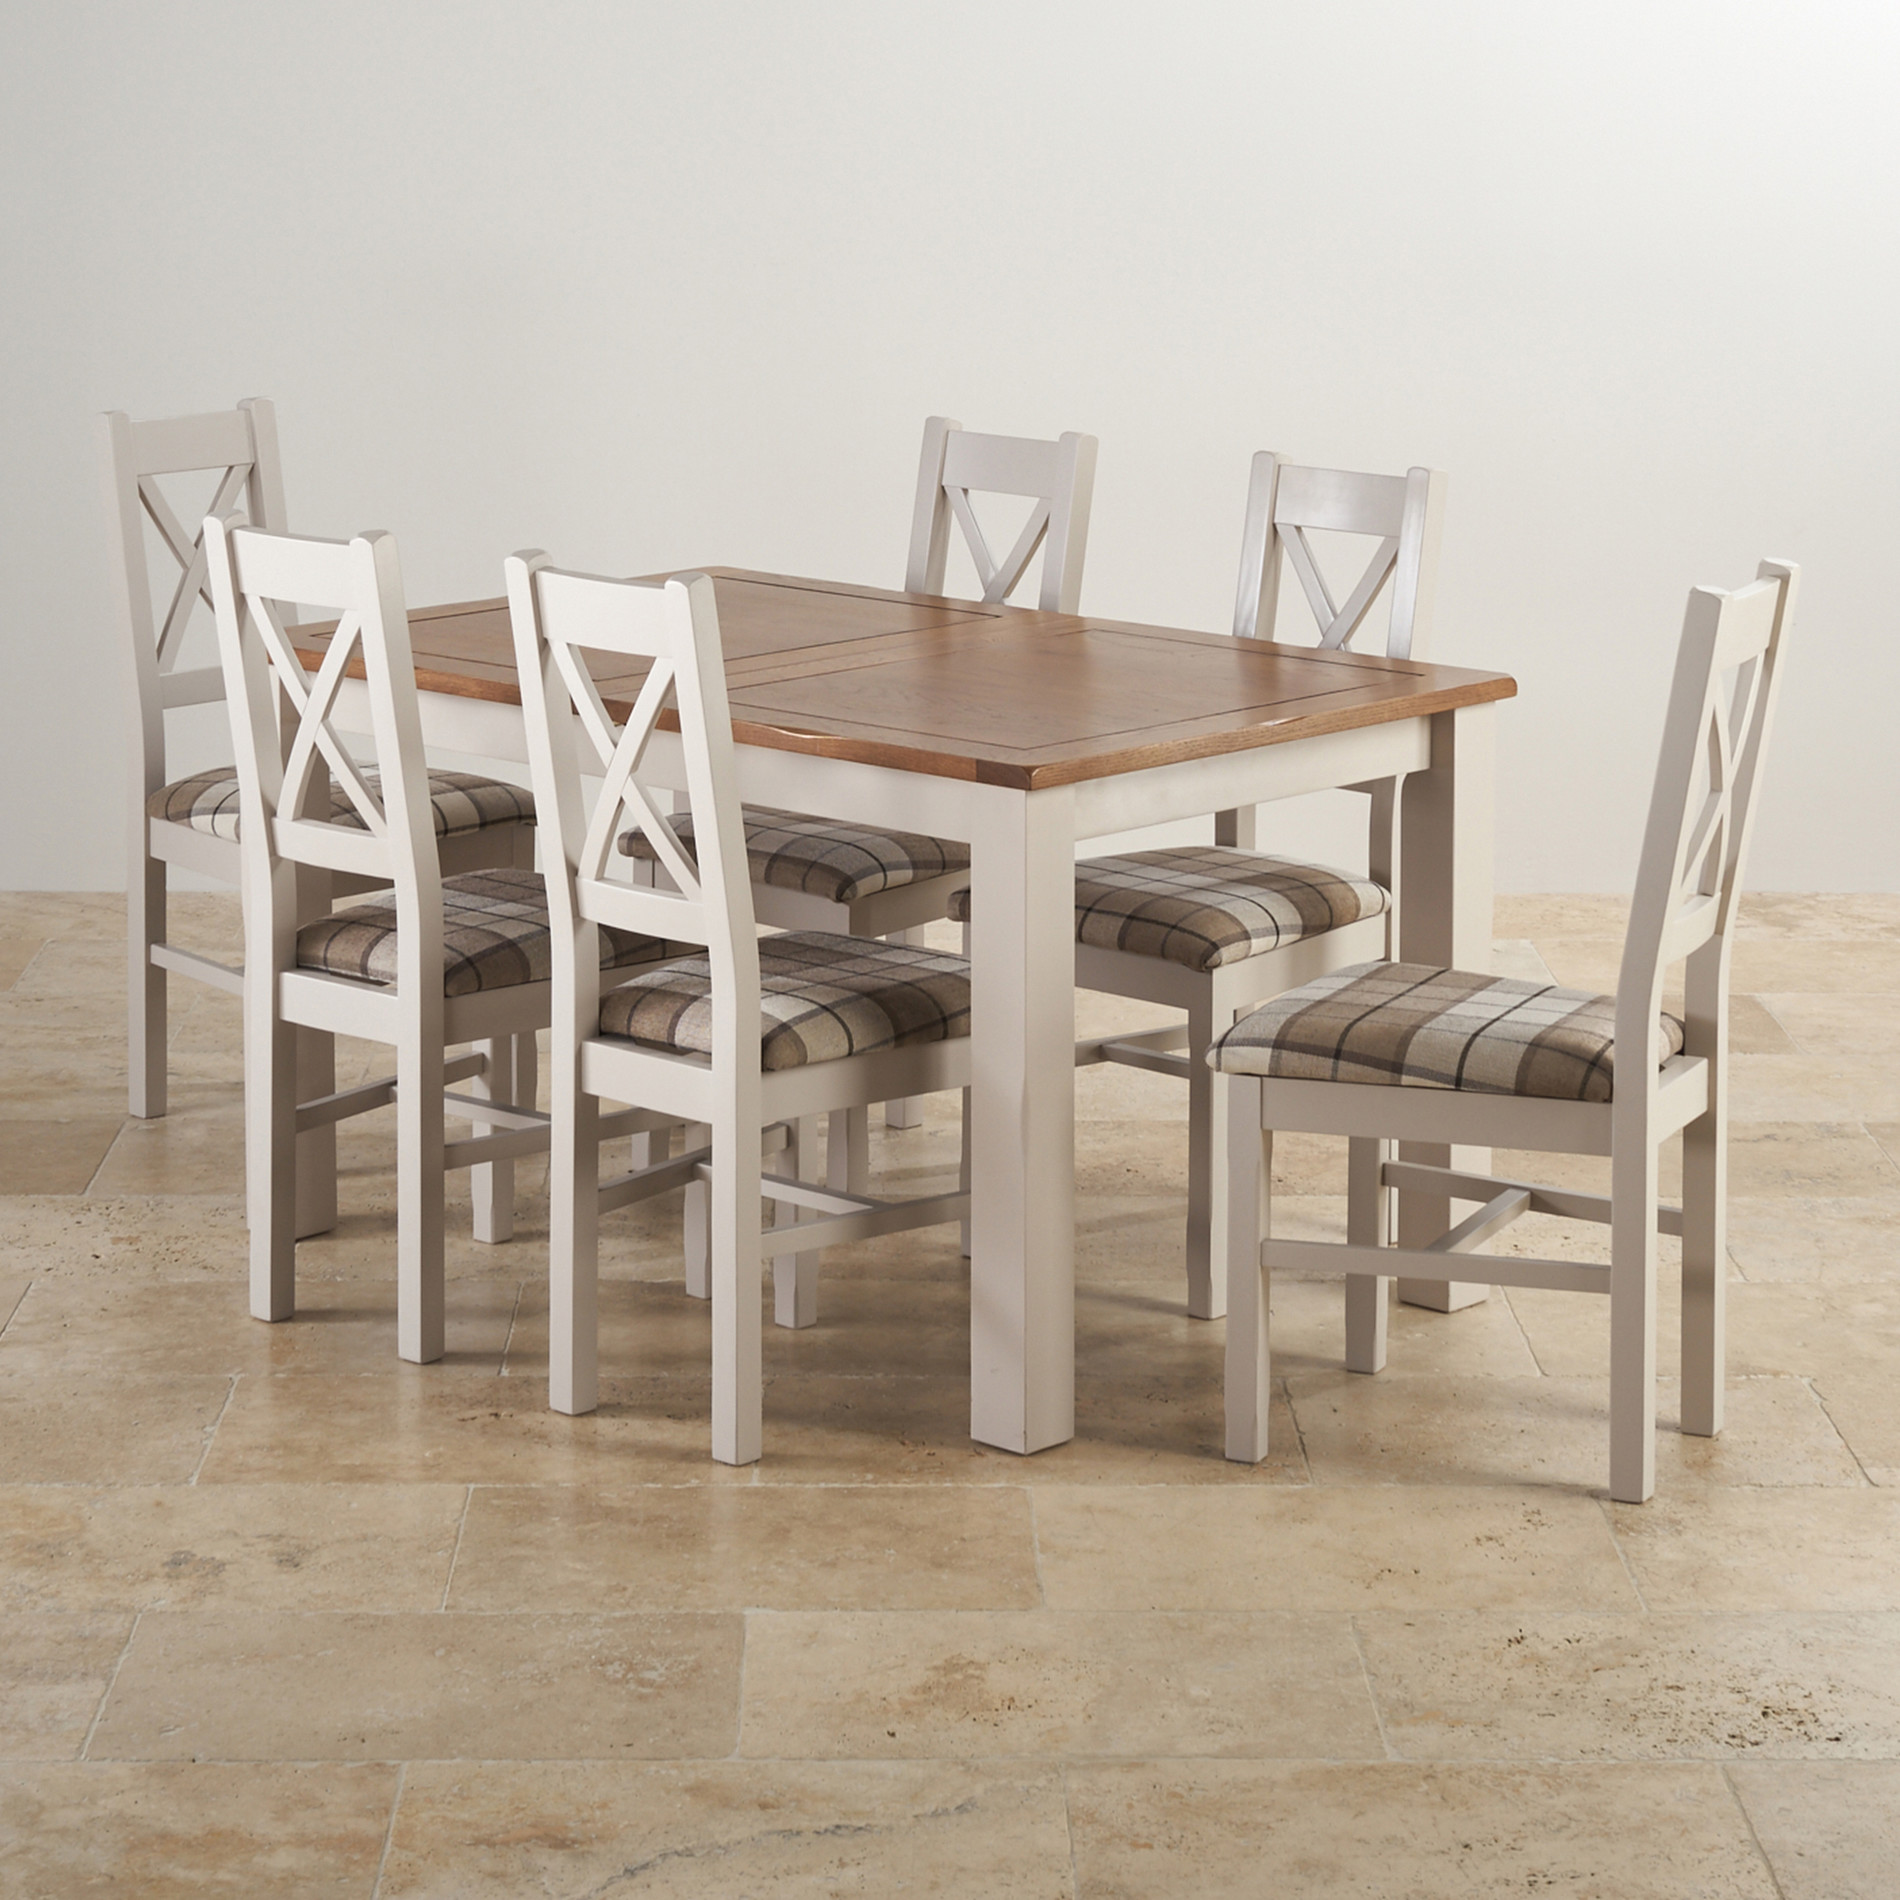 Rustic solid oak and painted dining set with six chairs